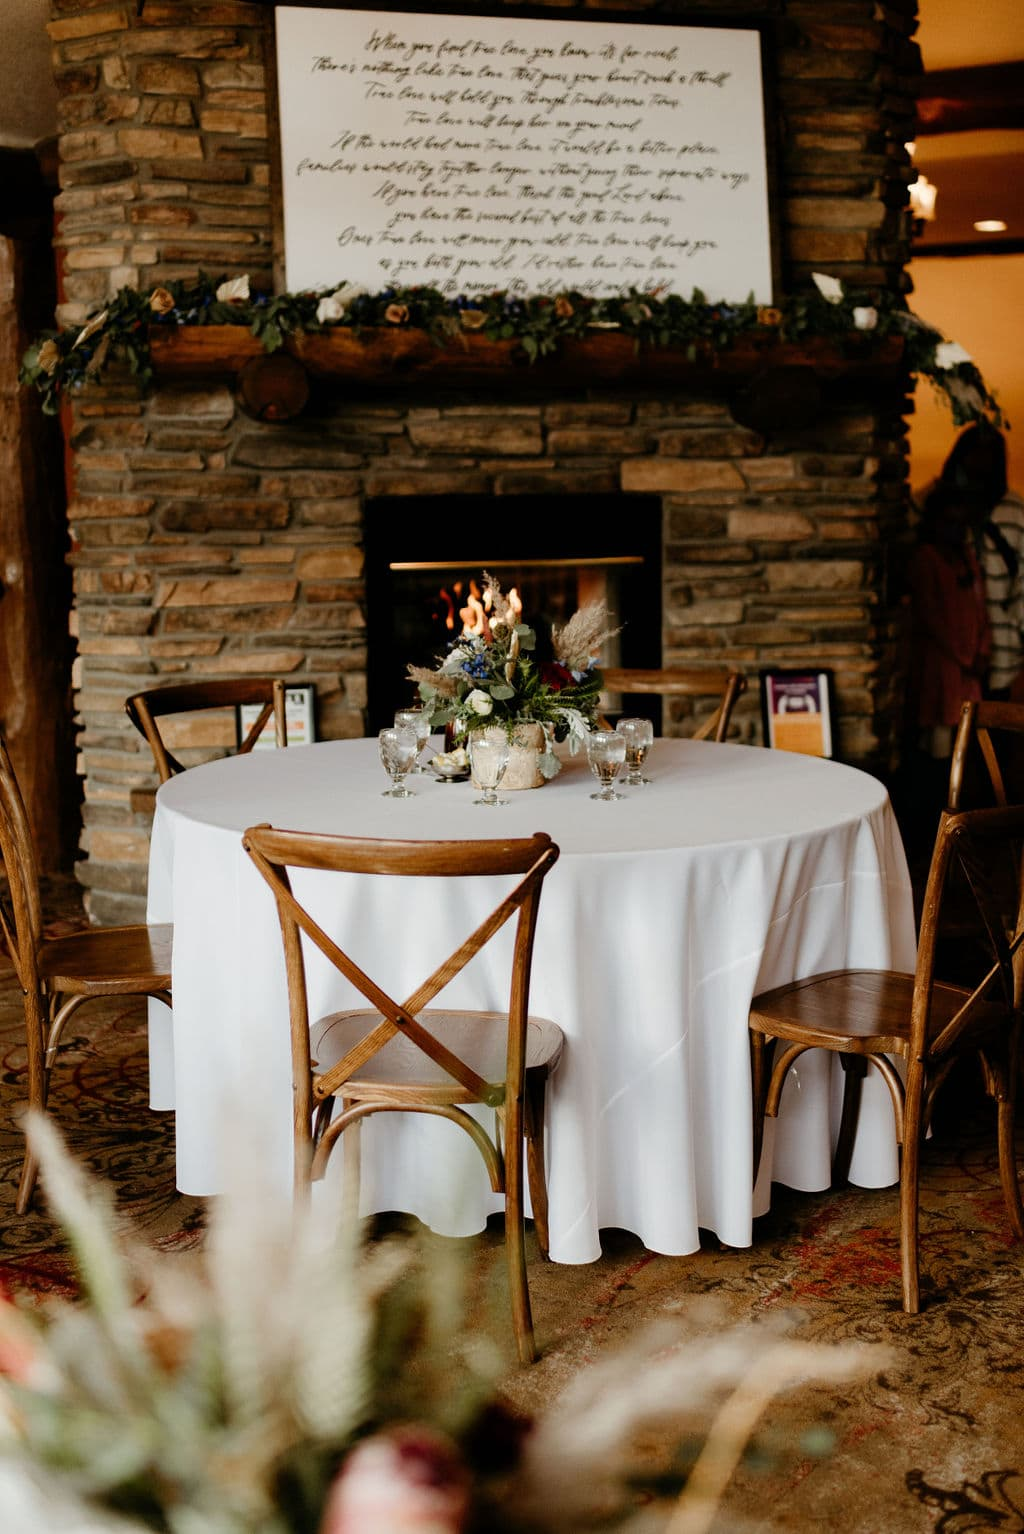 Wedding details at estes park resort wedding reception